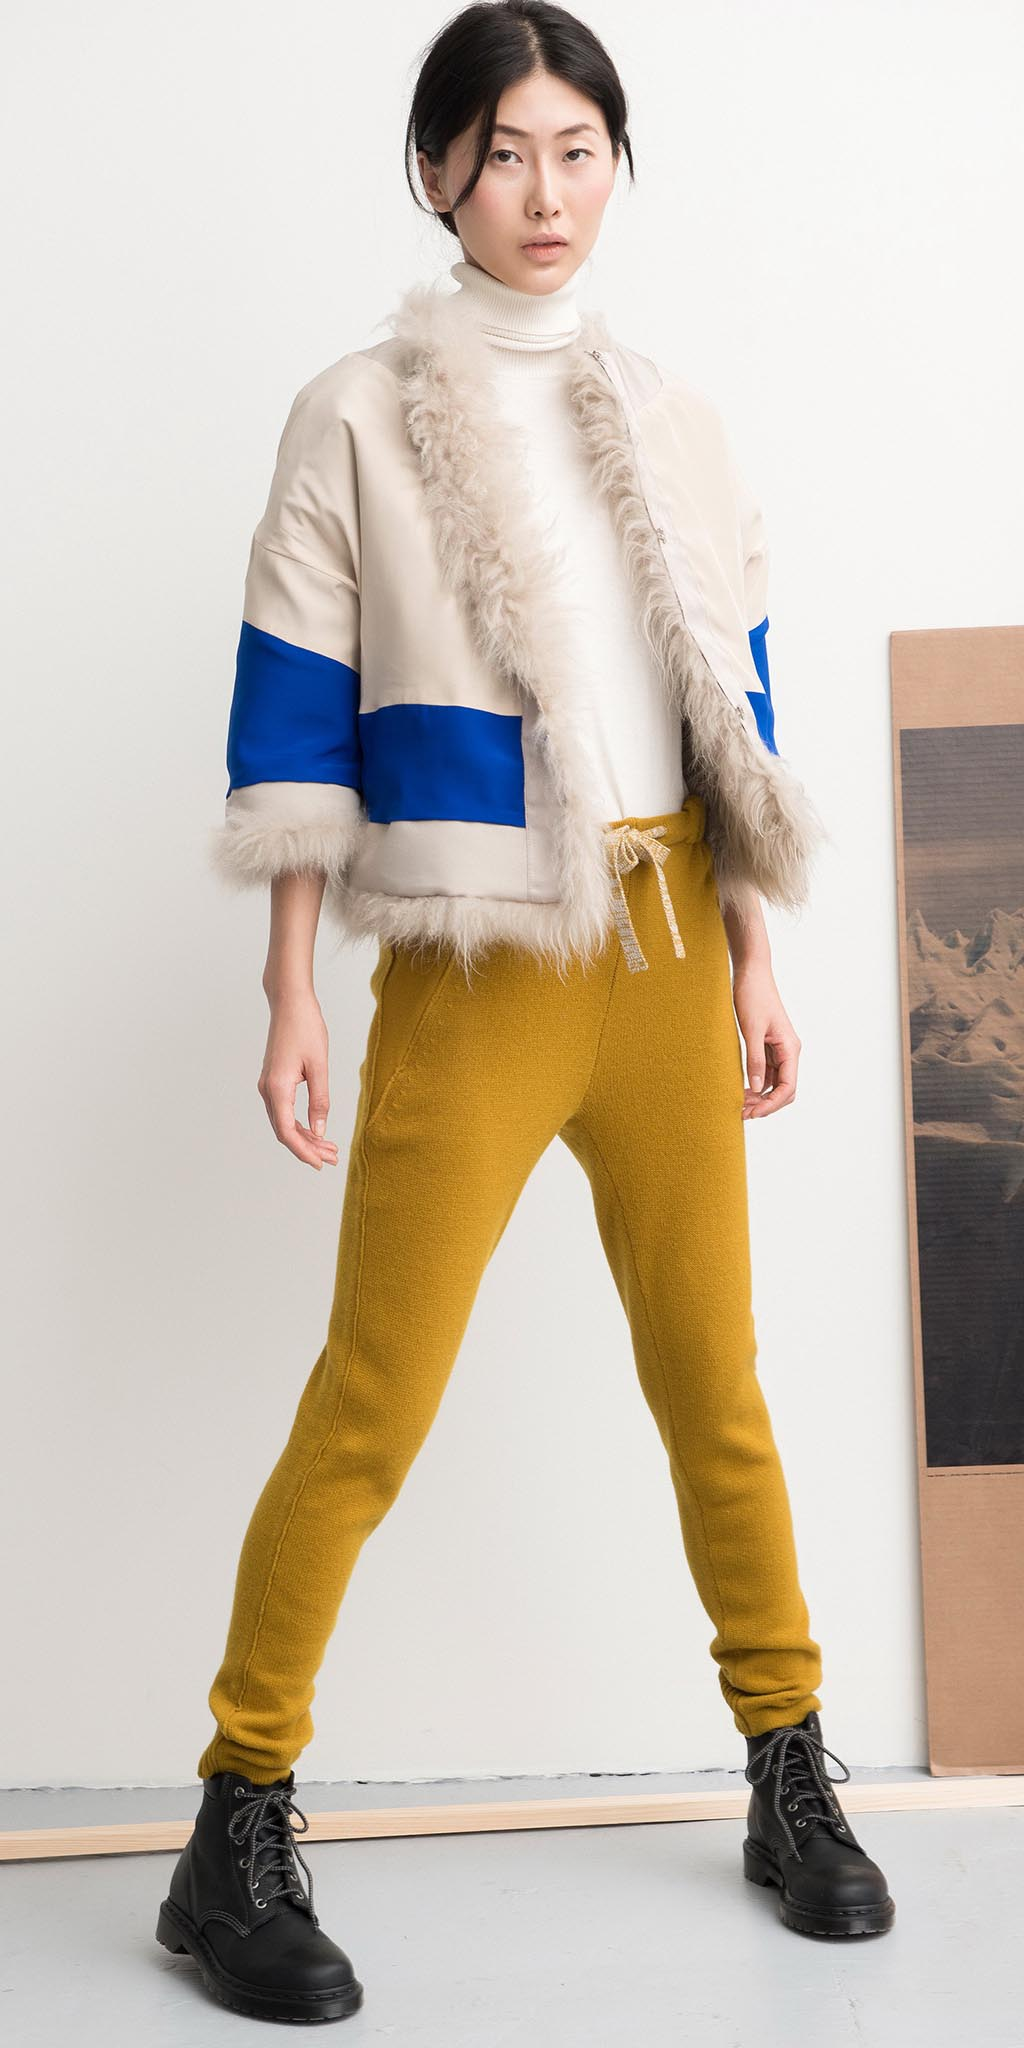 yellow-joggers-pants-white-sweater-black-shoe-booties-white-jacket-shearling-bun-turtleneck-fall-winter-brun-lunch.jpg